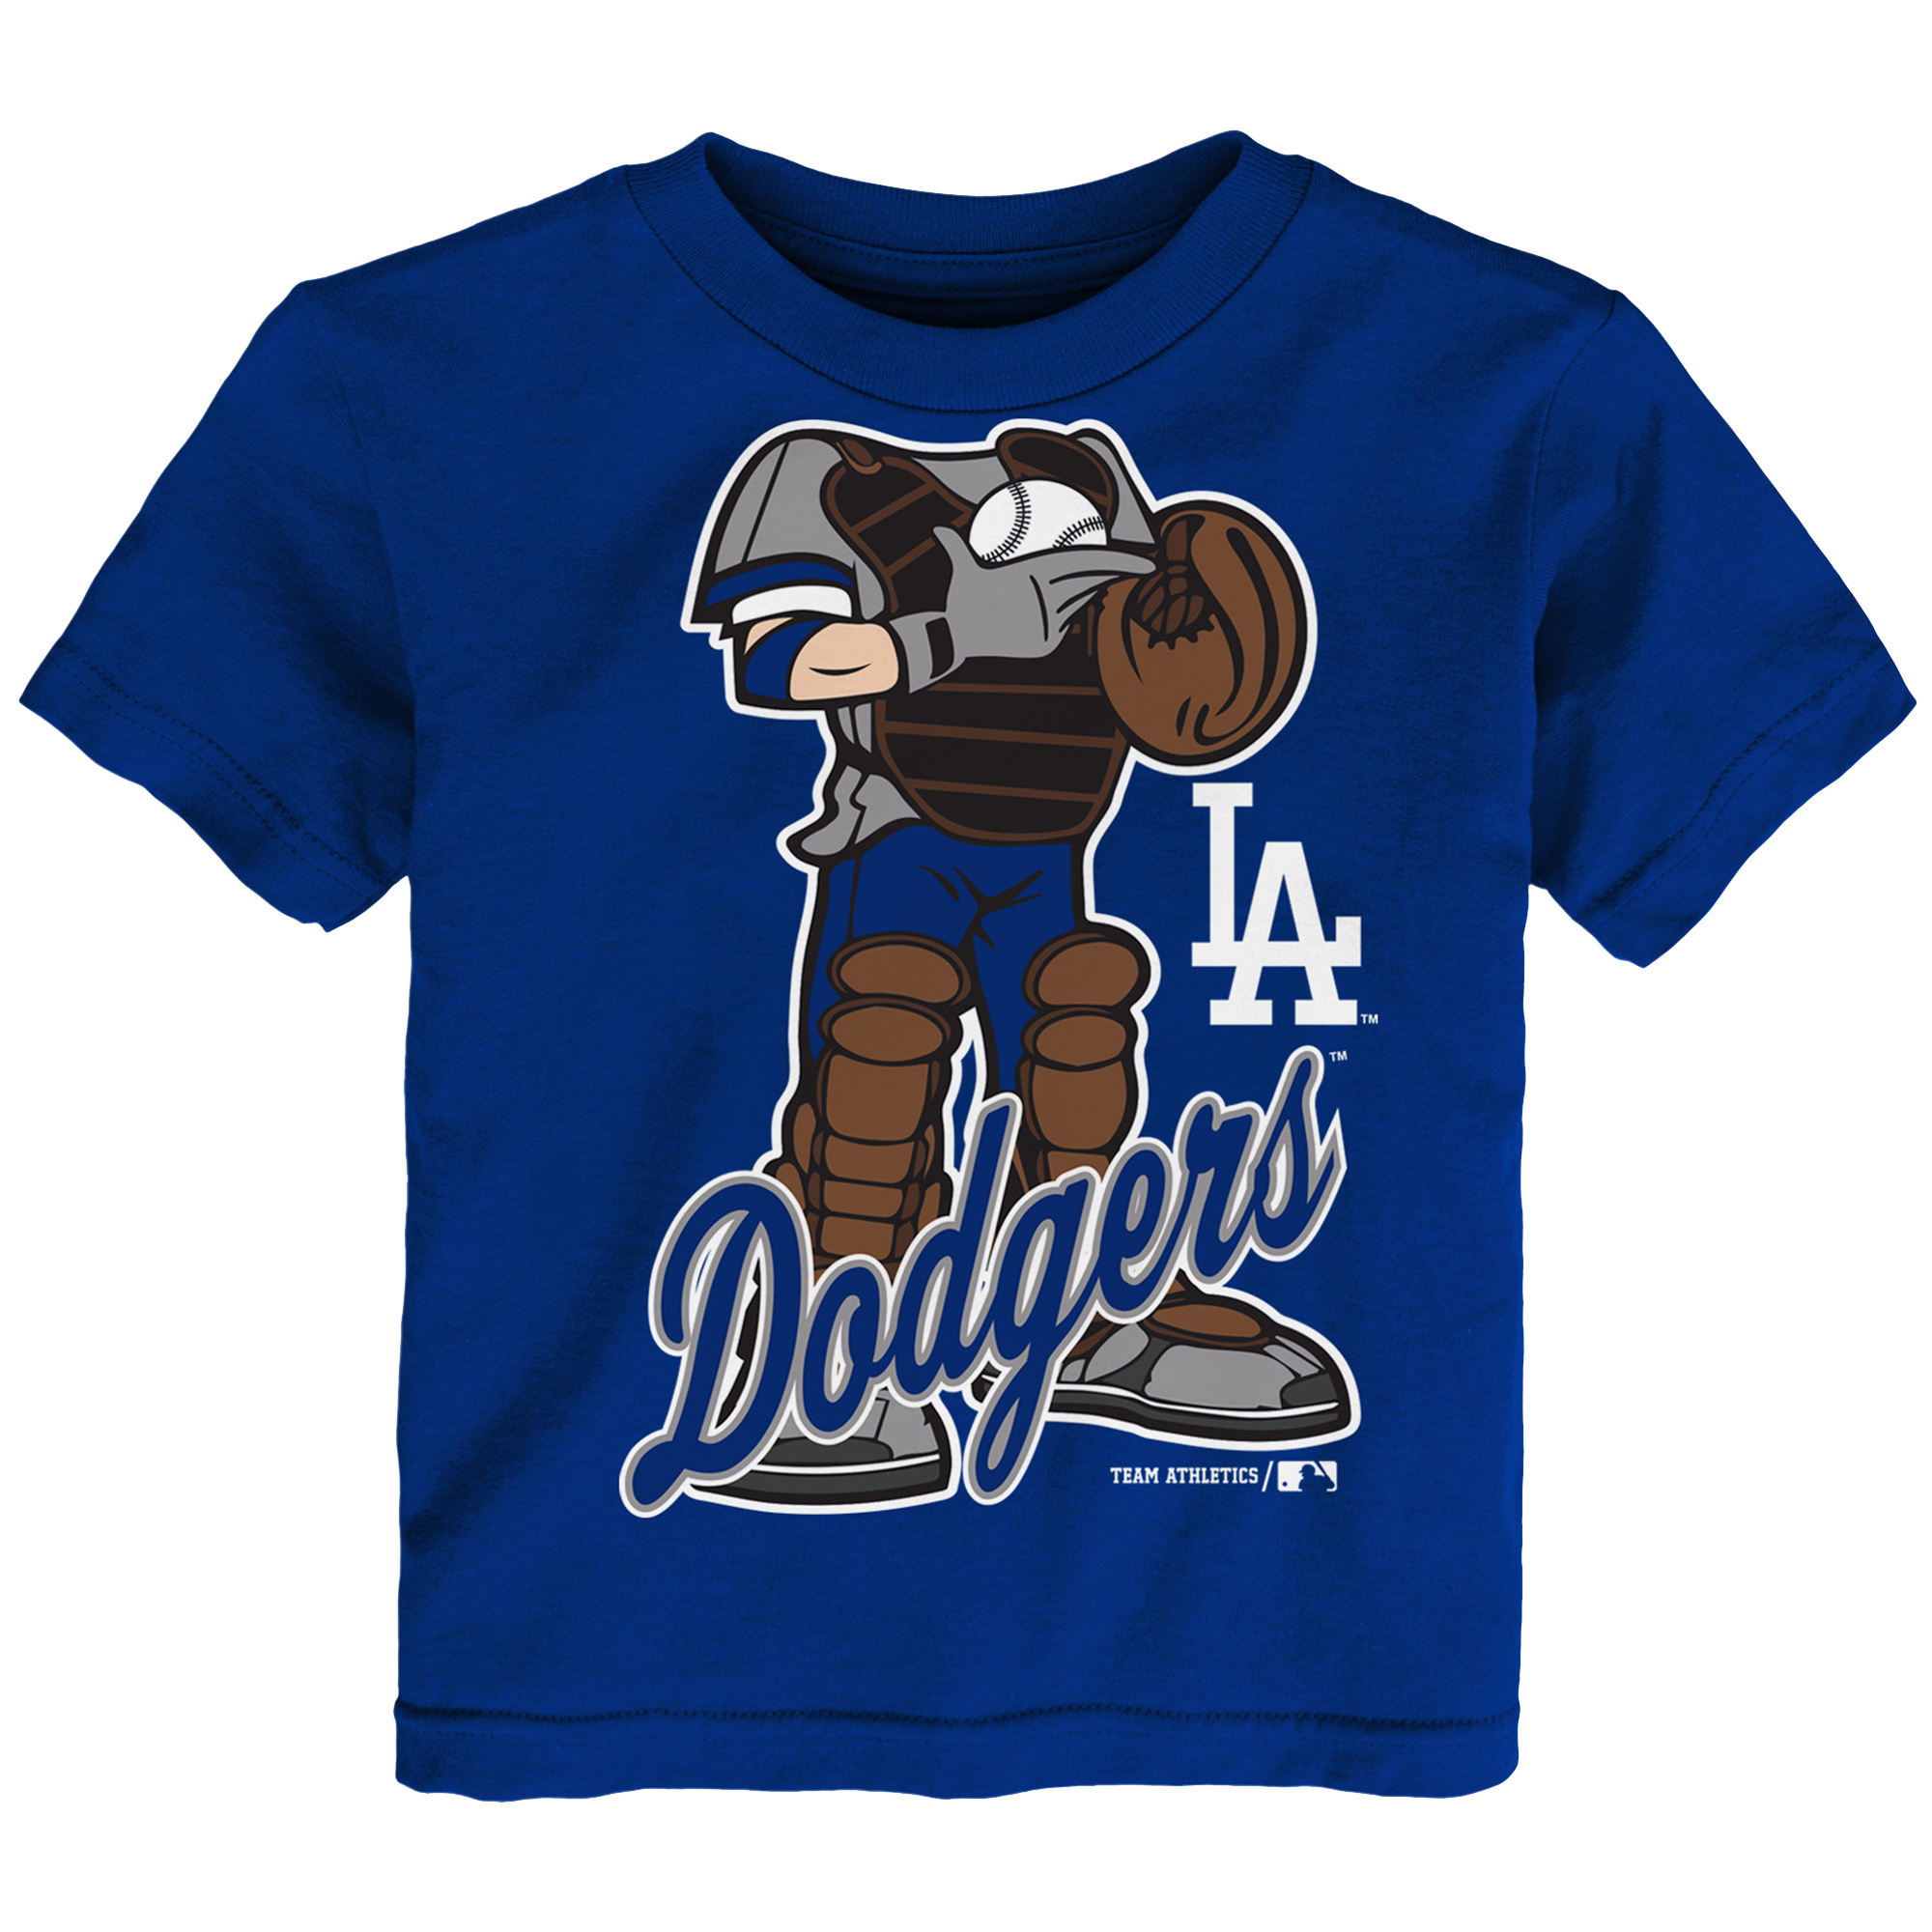 MLB Los Angeles Dodgers TEE Short Sleeve Boys 50% Cotton 50% Poly Team Color 12M-4T